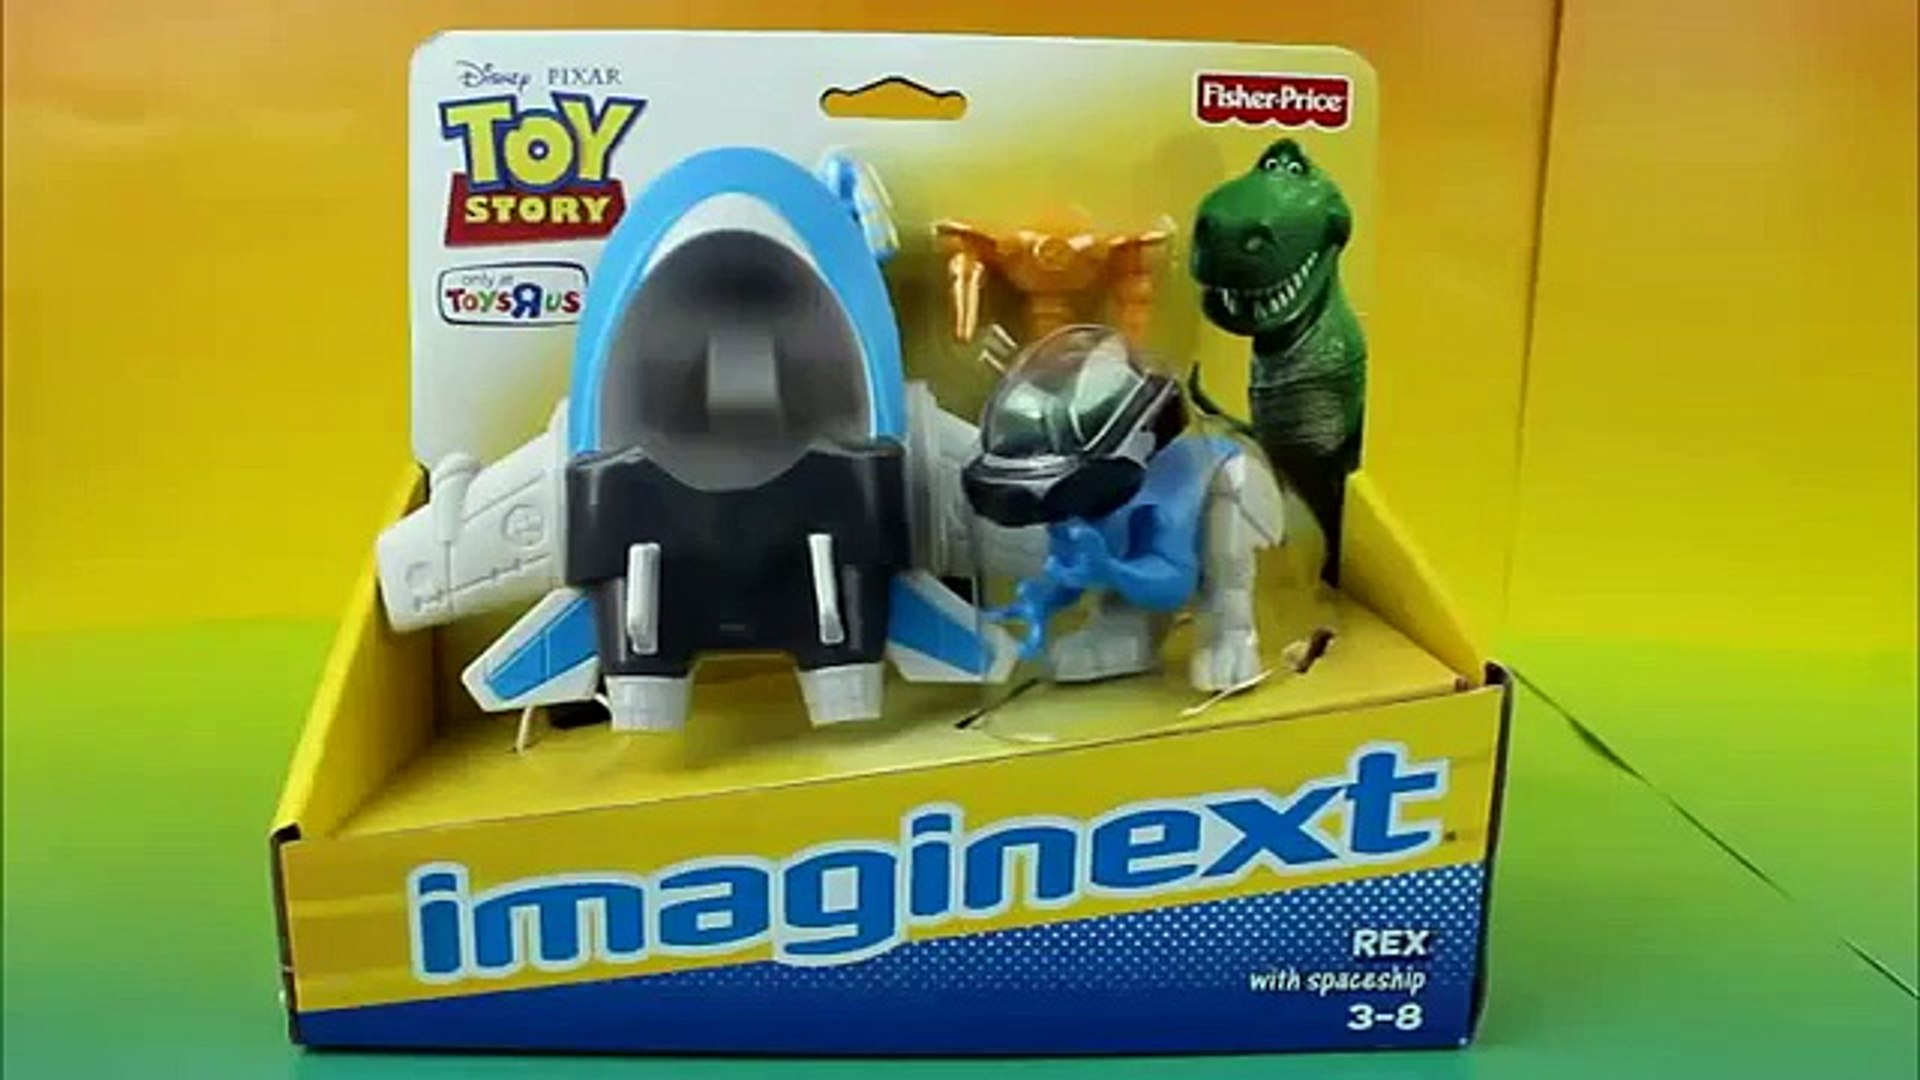 Toy Story Imaginext Rex with Spaceship Rex saves Buzz Lightyear & Woody from Zerg Pizza Planet